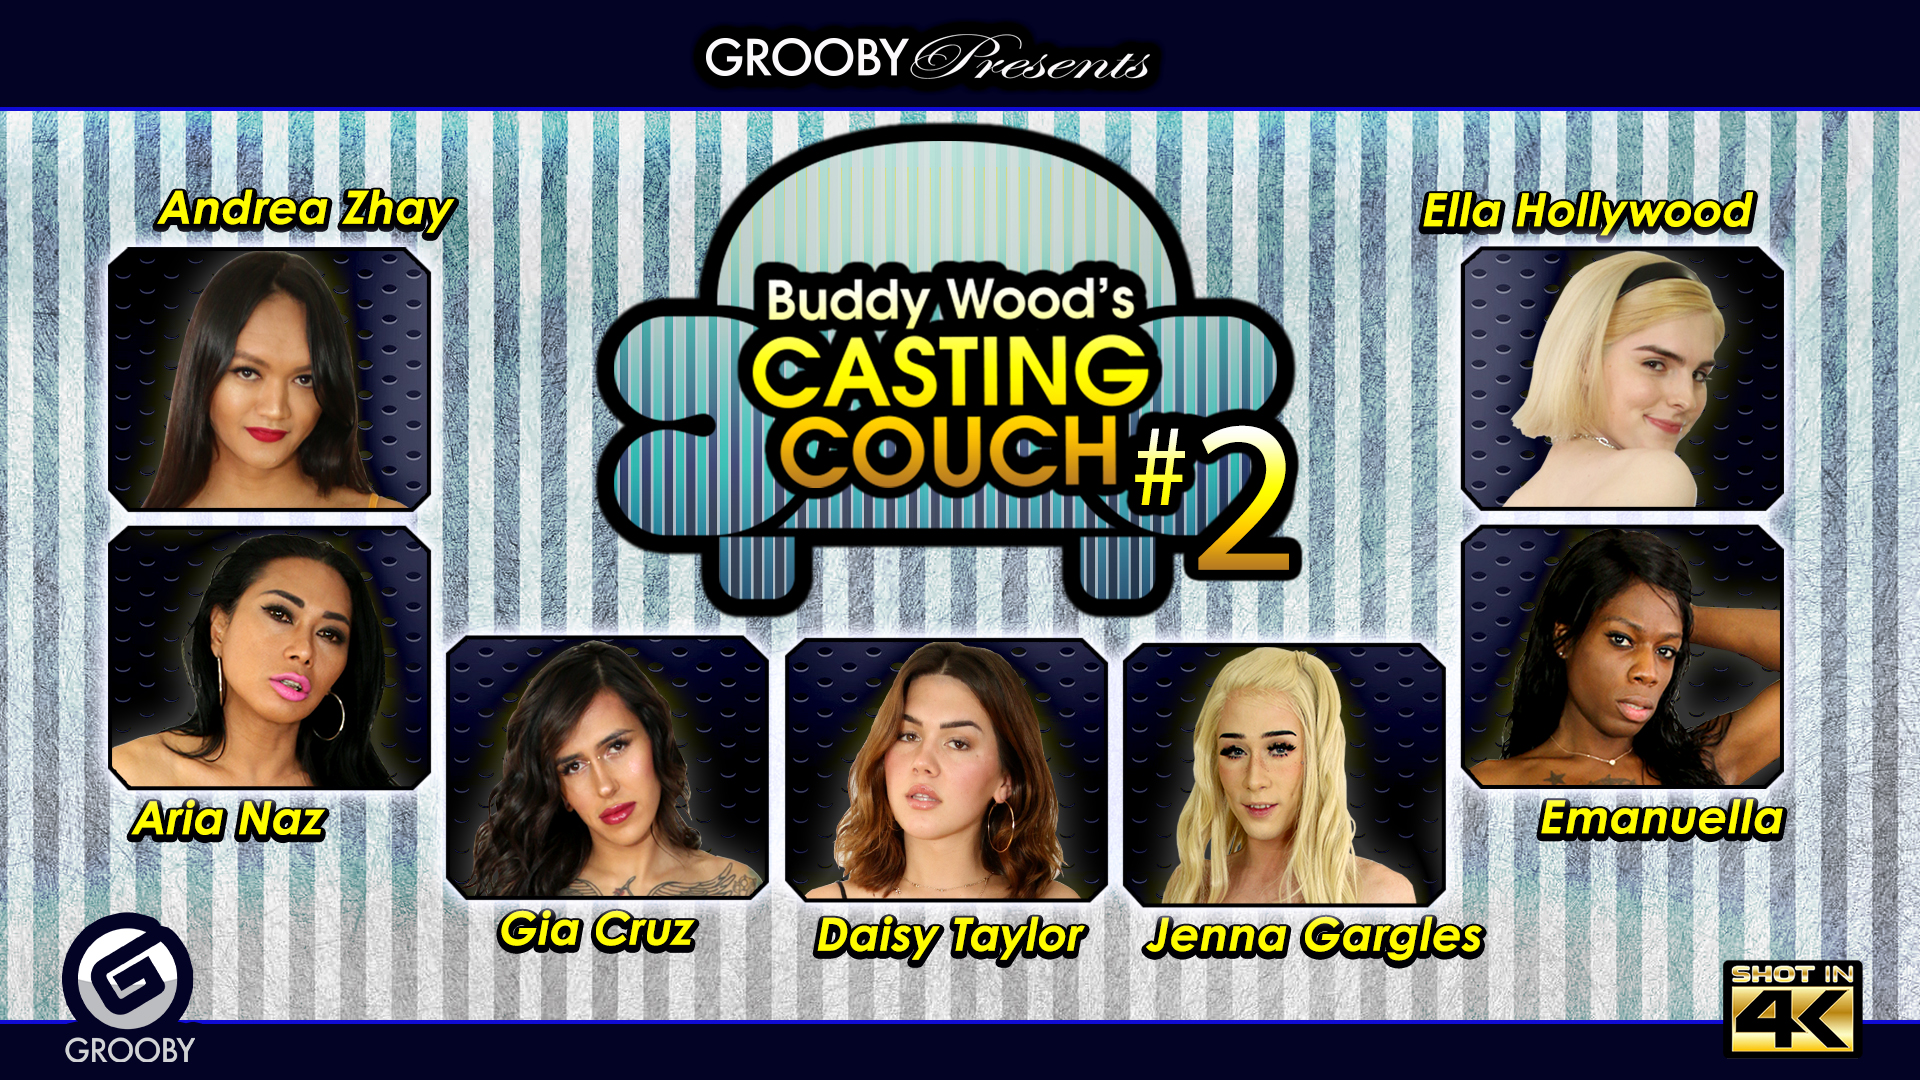 Buddy Woods Casting Couch 2 - DVD Trailer